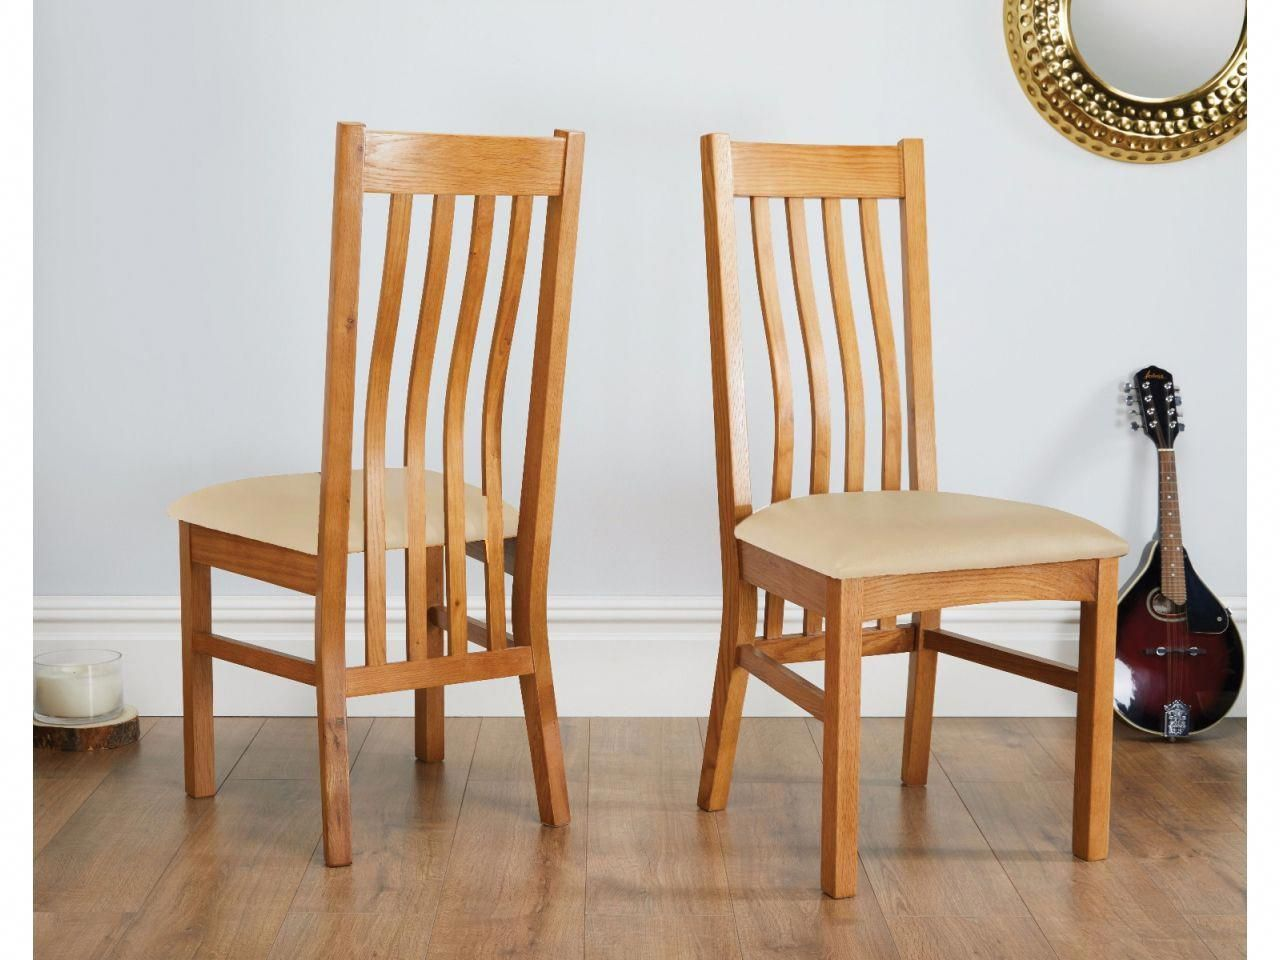 These Farmhouse solid oak dining chairs are made from sustainable American oak and e with a cream leather seat pad rockingchairpads